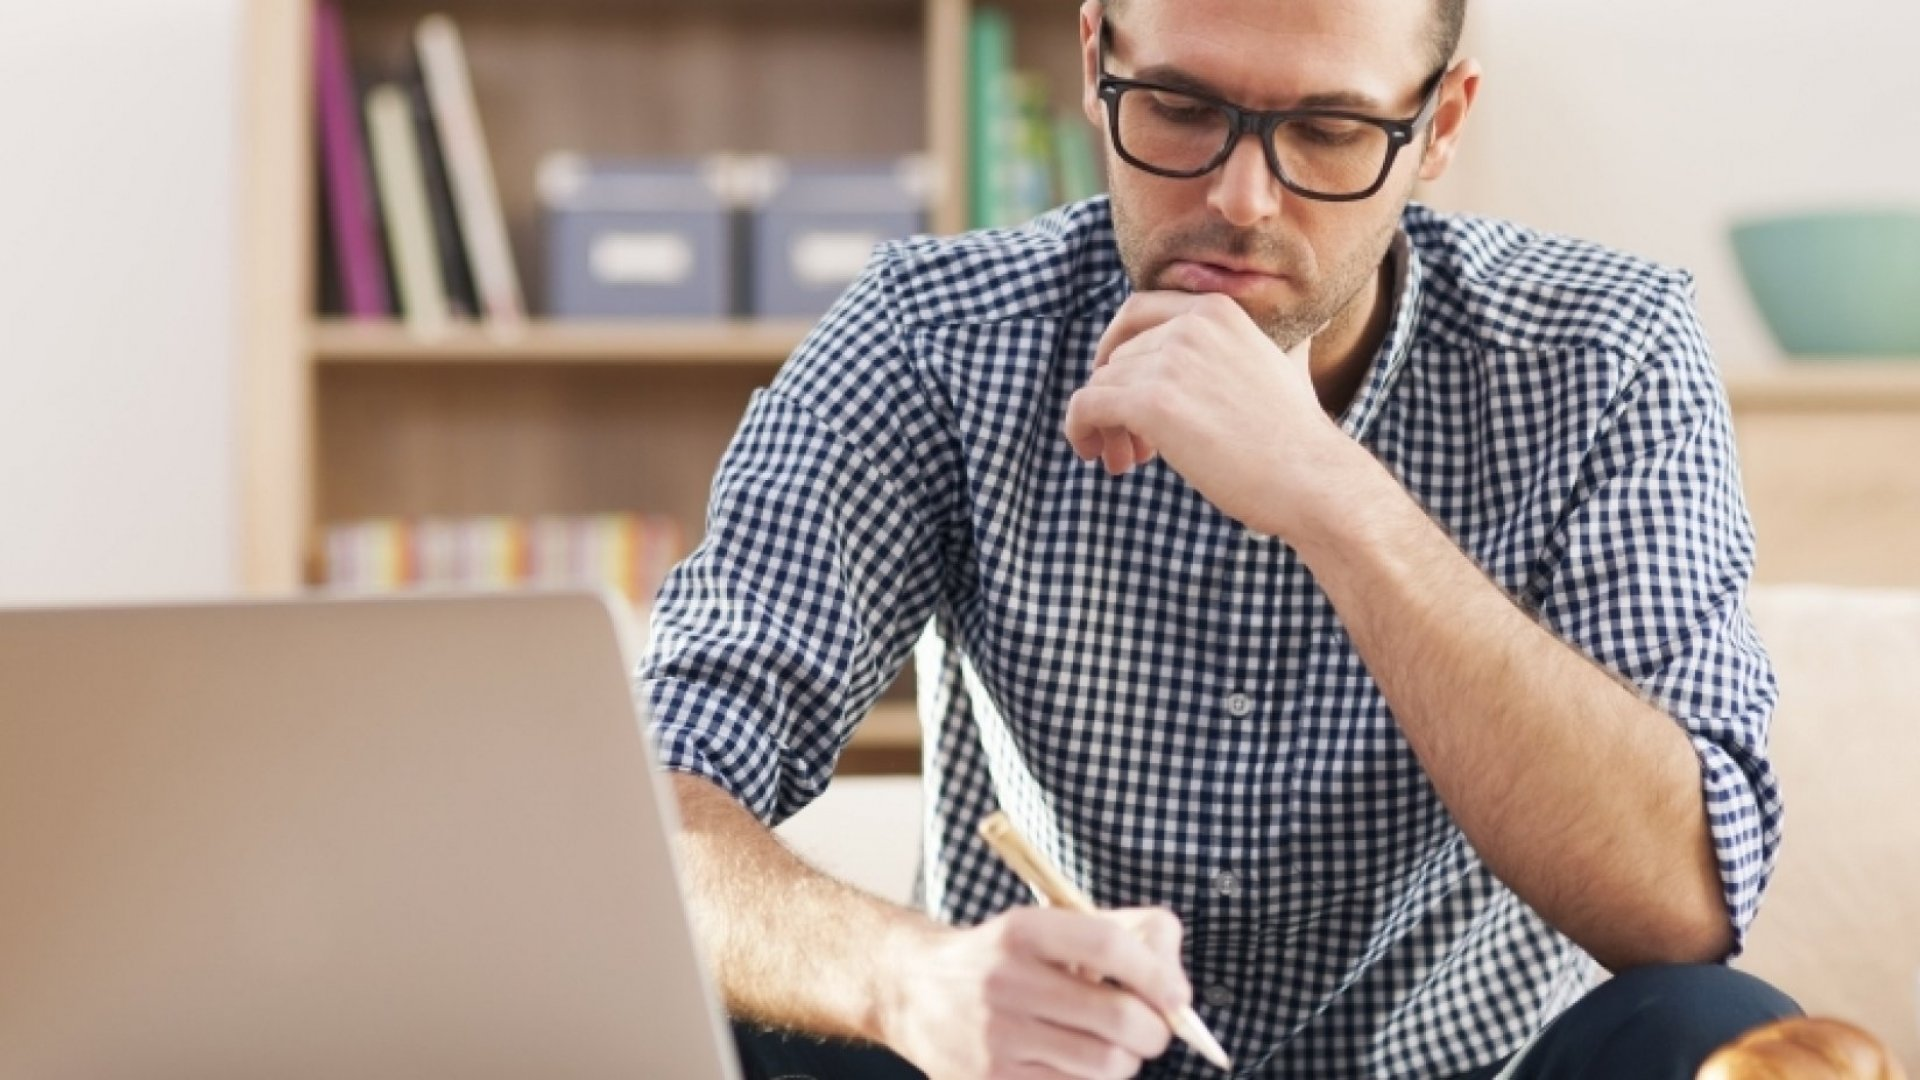 5 Simple Ways to Make Your Writing Significantly Better